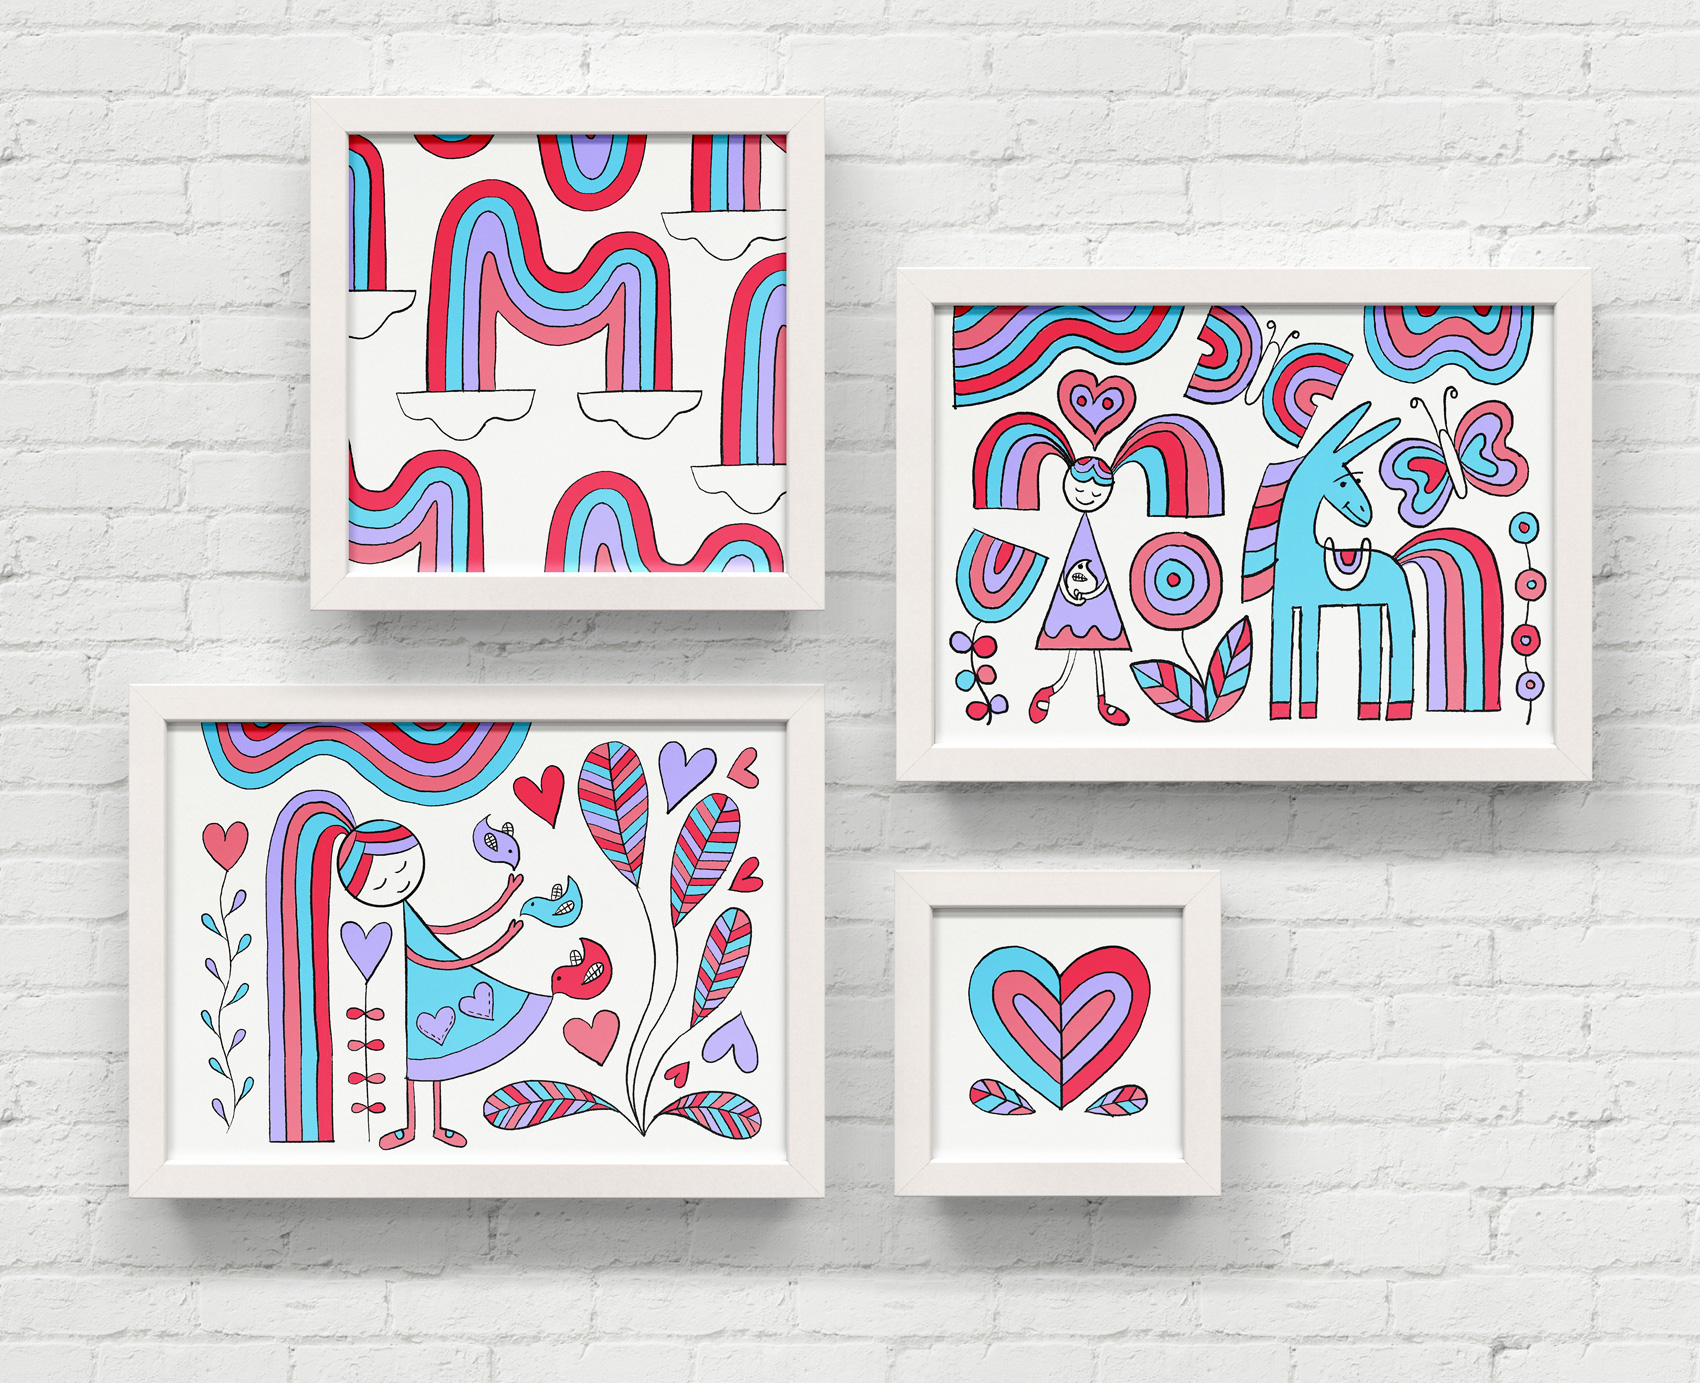 Series of four illustrations done in four rainbow-tastic colors. A girl and her mule, a bifurcated heart, rainbows everywhere, and a rainbow world interpretation of the Cinderella dress scene.